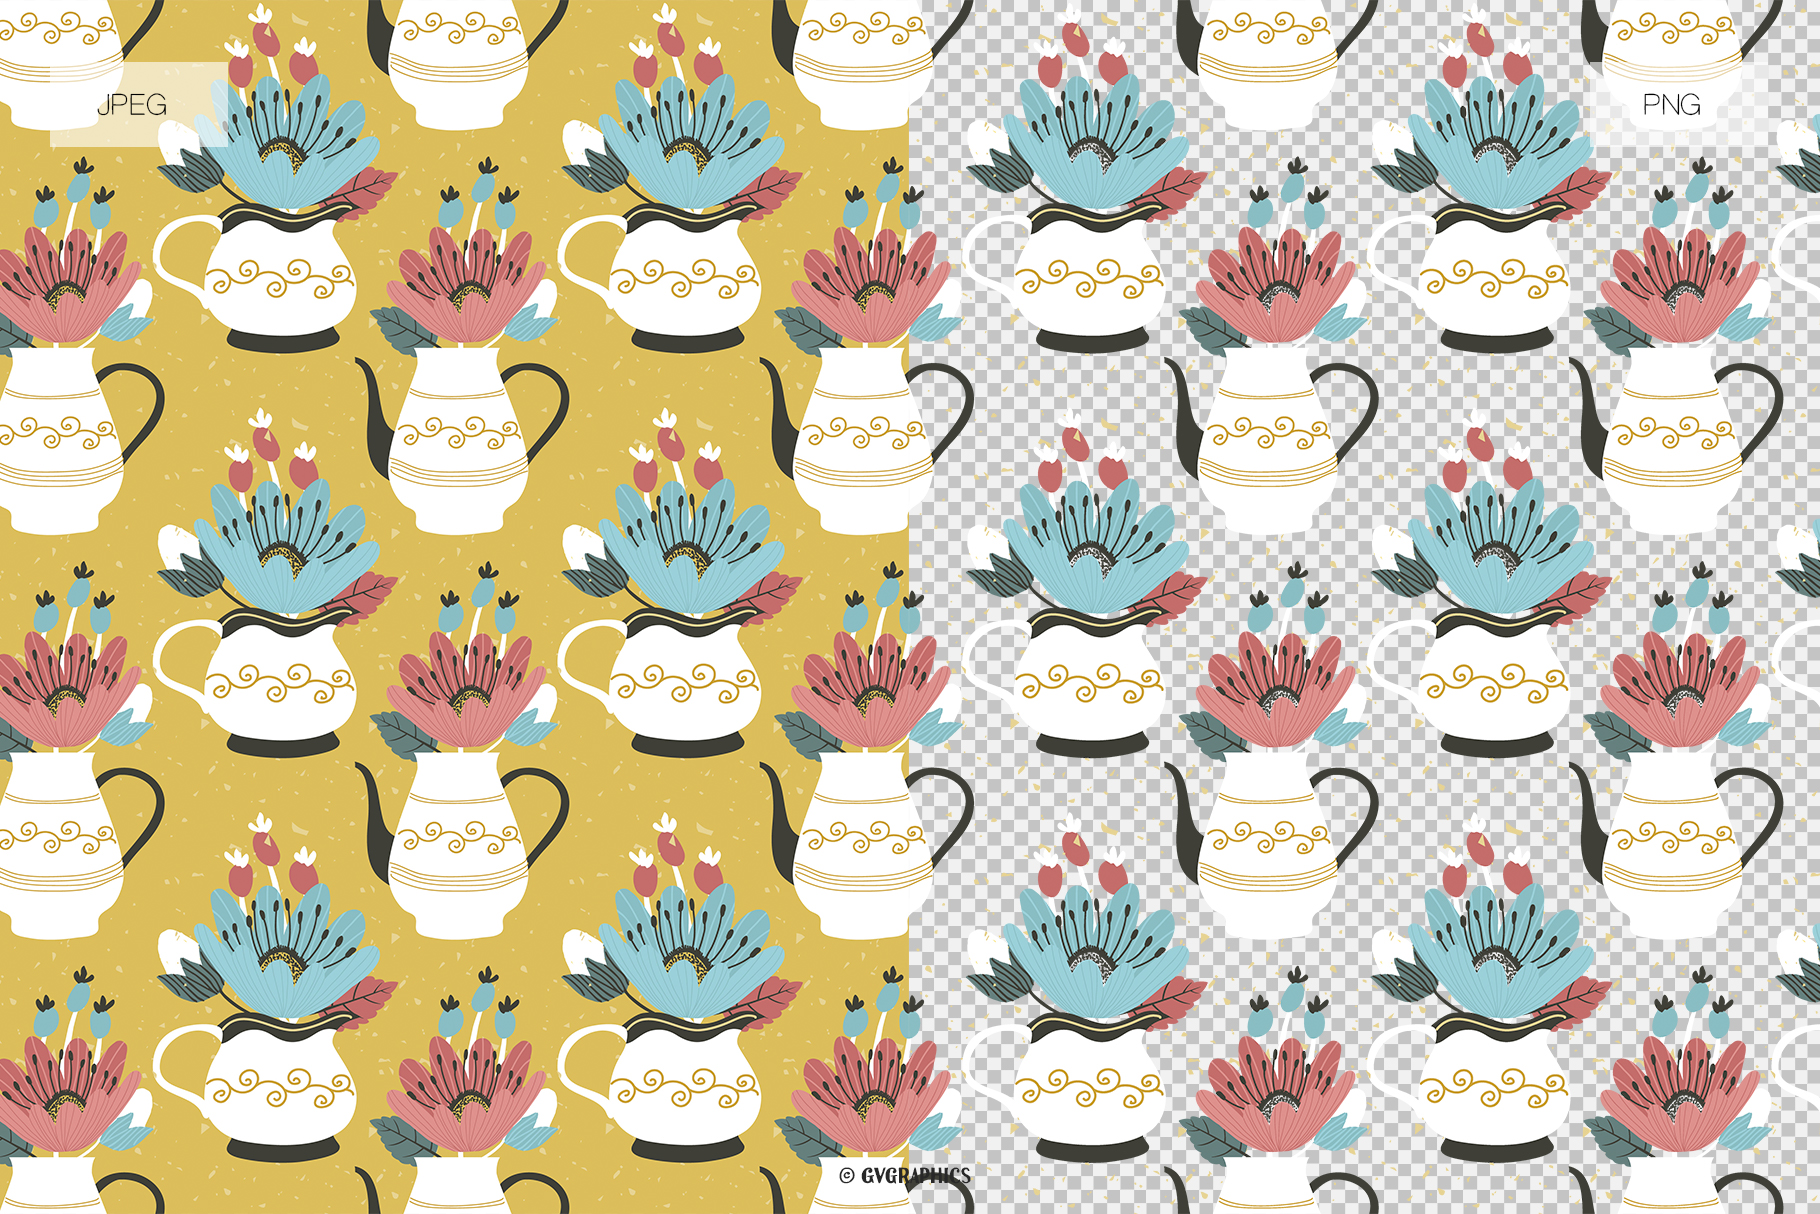 Flowers and Teapots Seamless Patterns JPG PNG